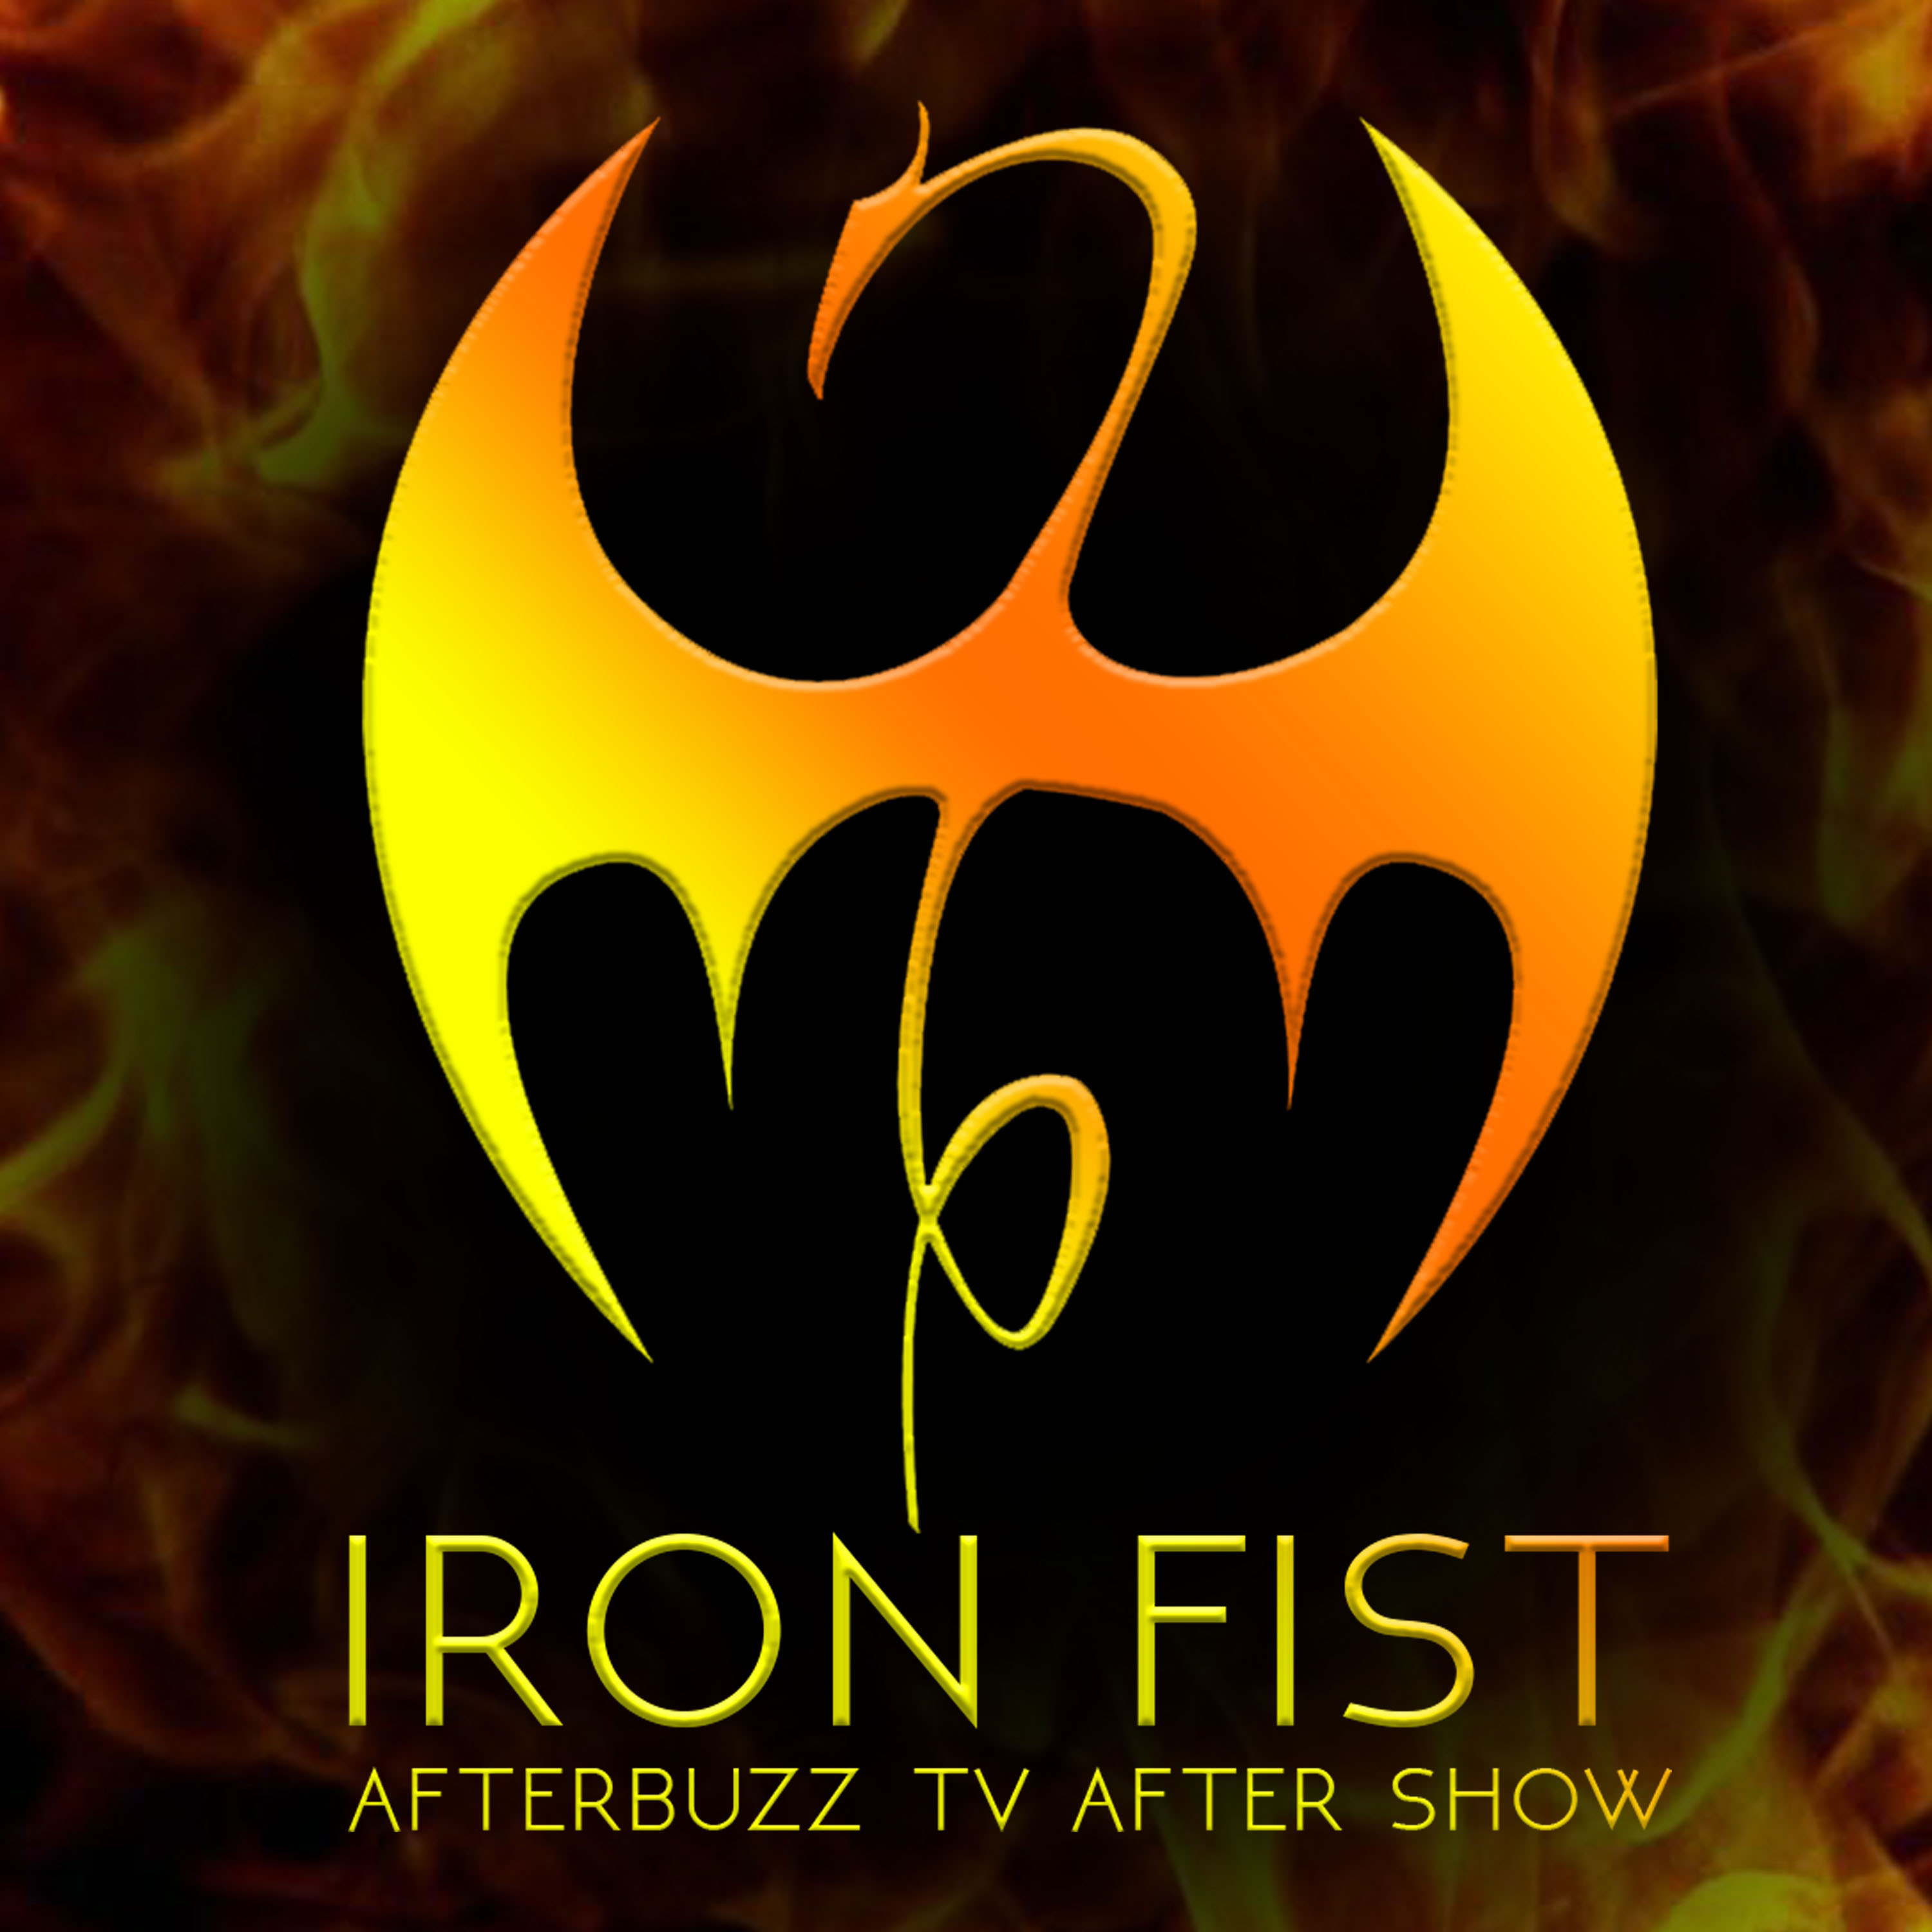 Iron Fist After Show